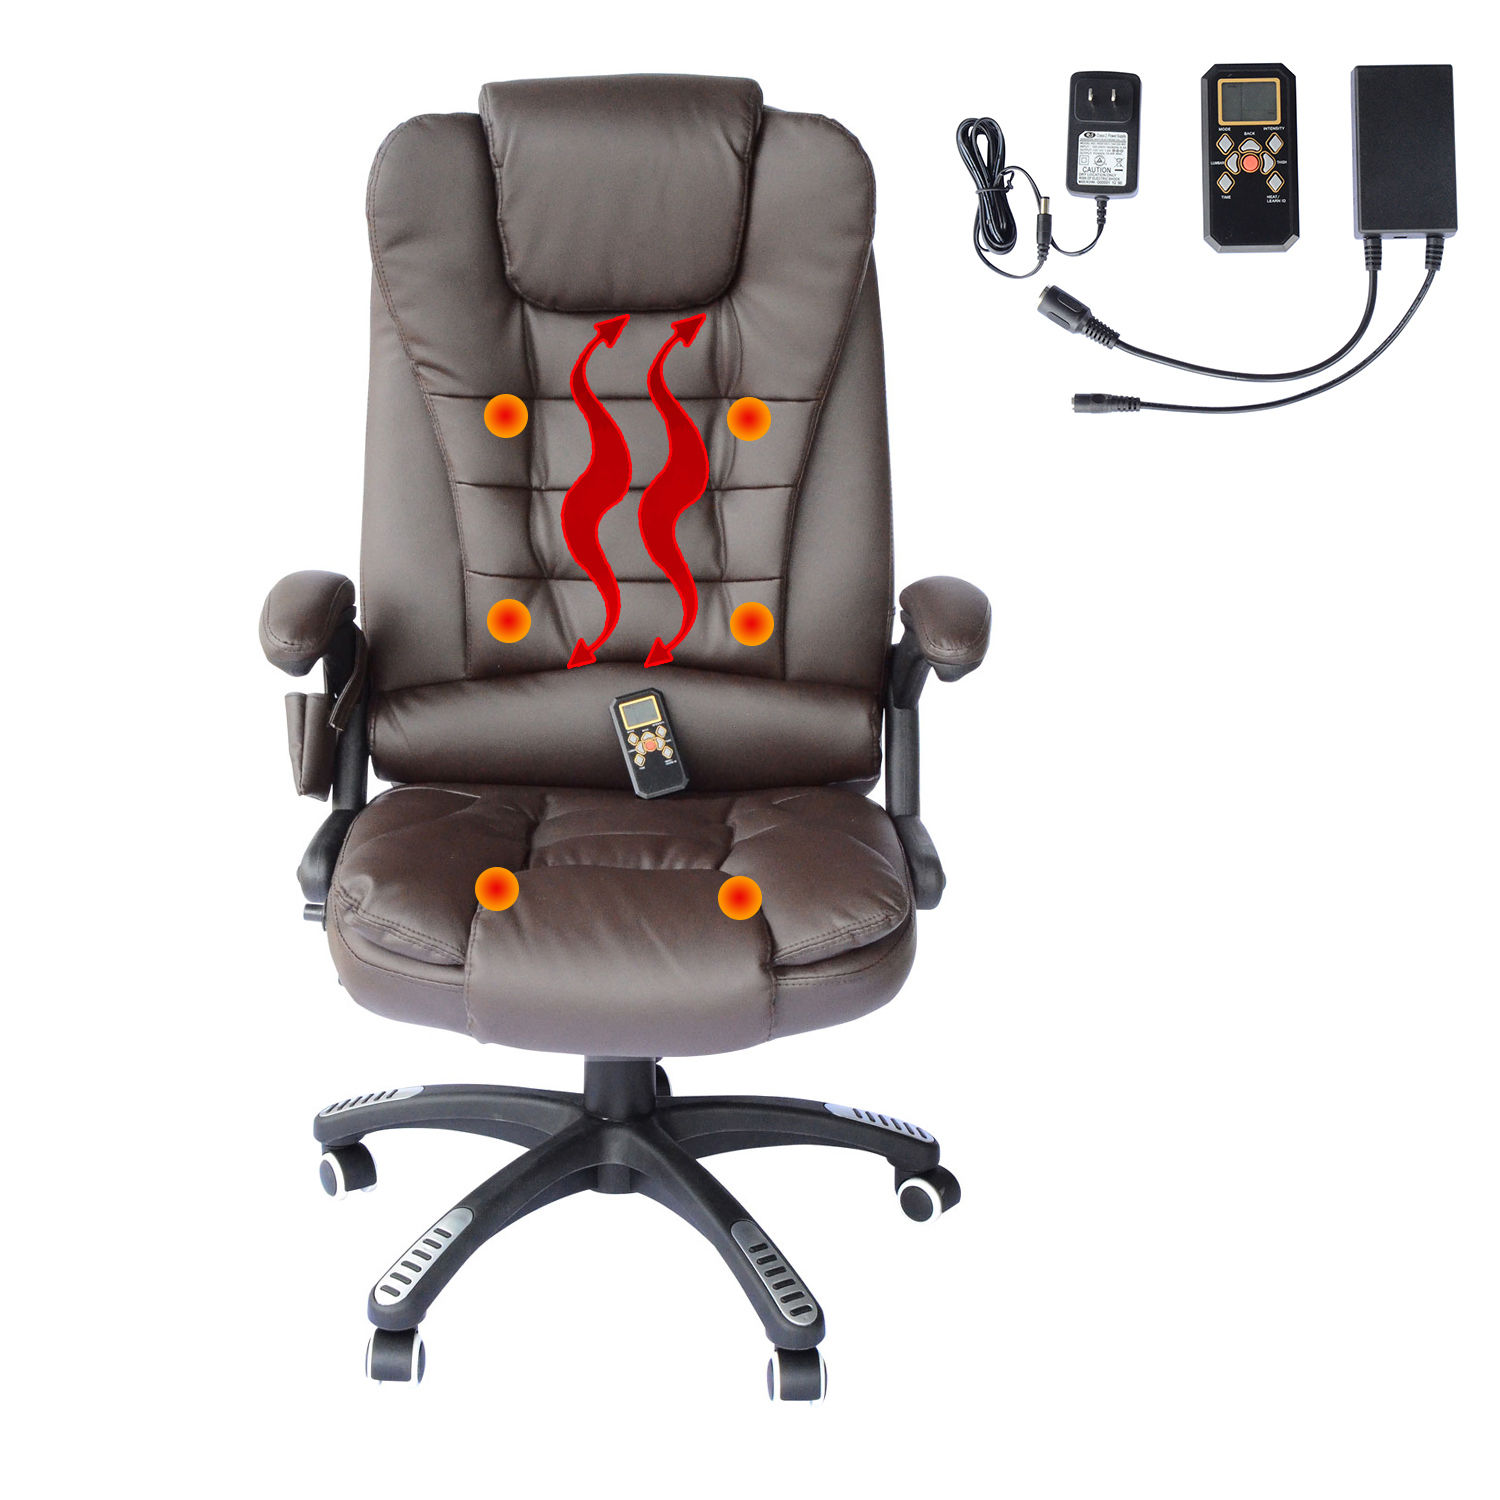 Heated Massage Office Chair Home Office Computer Desk Massage Chair Executive